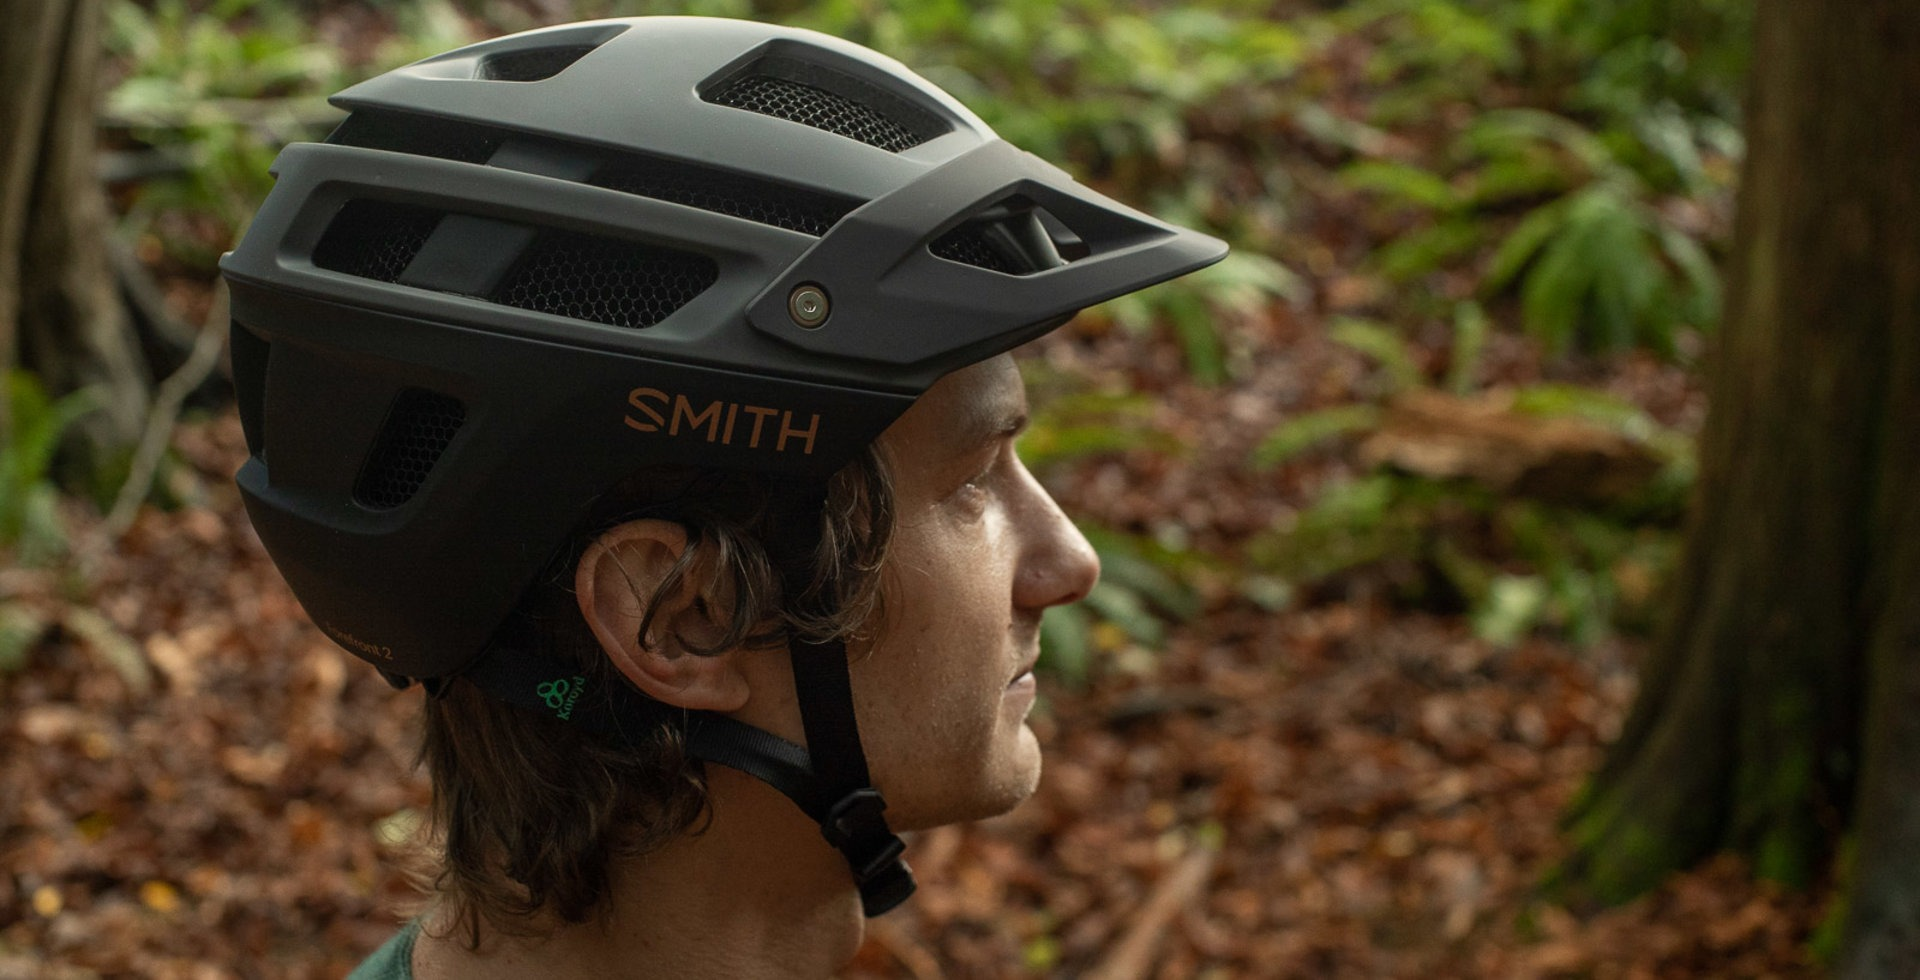 Don't call it a comeback. Smith's original Forefront was a classic, and the second iteration has only improved it's form and function.